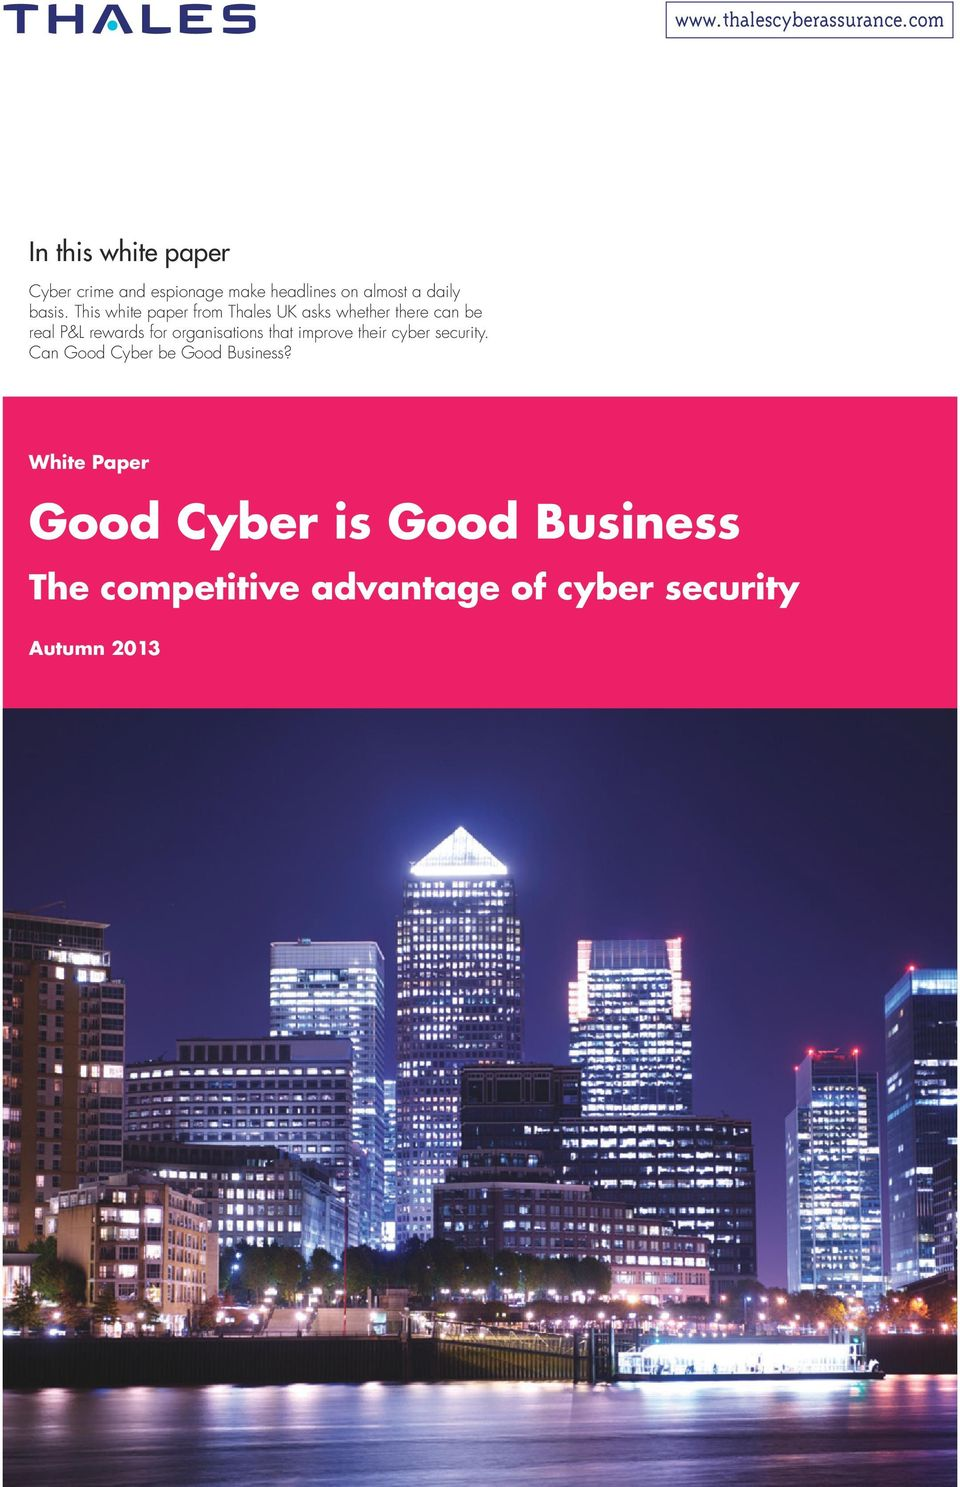 organisations that improve their cyber security. Can Good Cyber be Good Business?